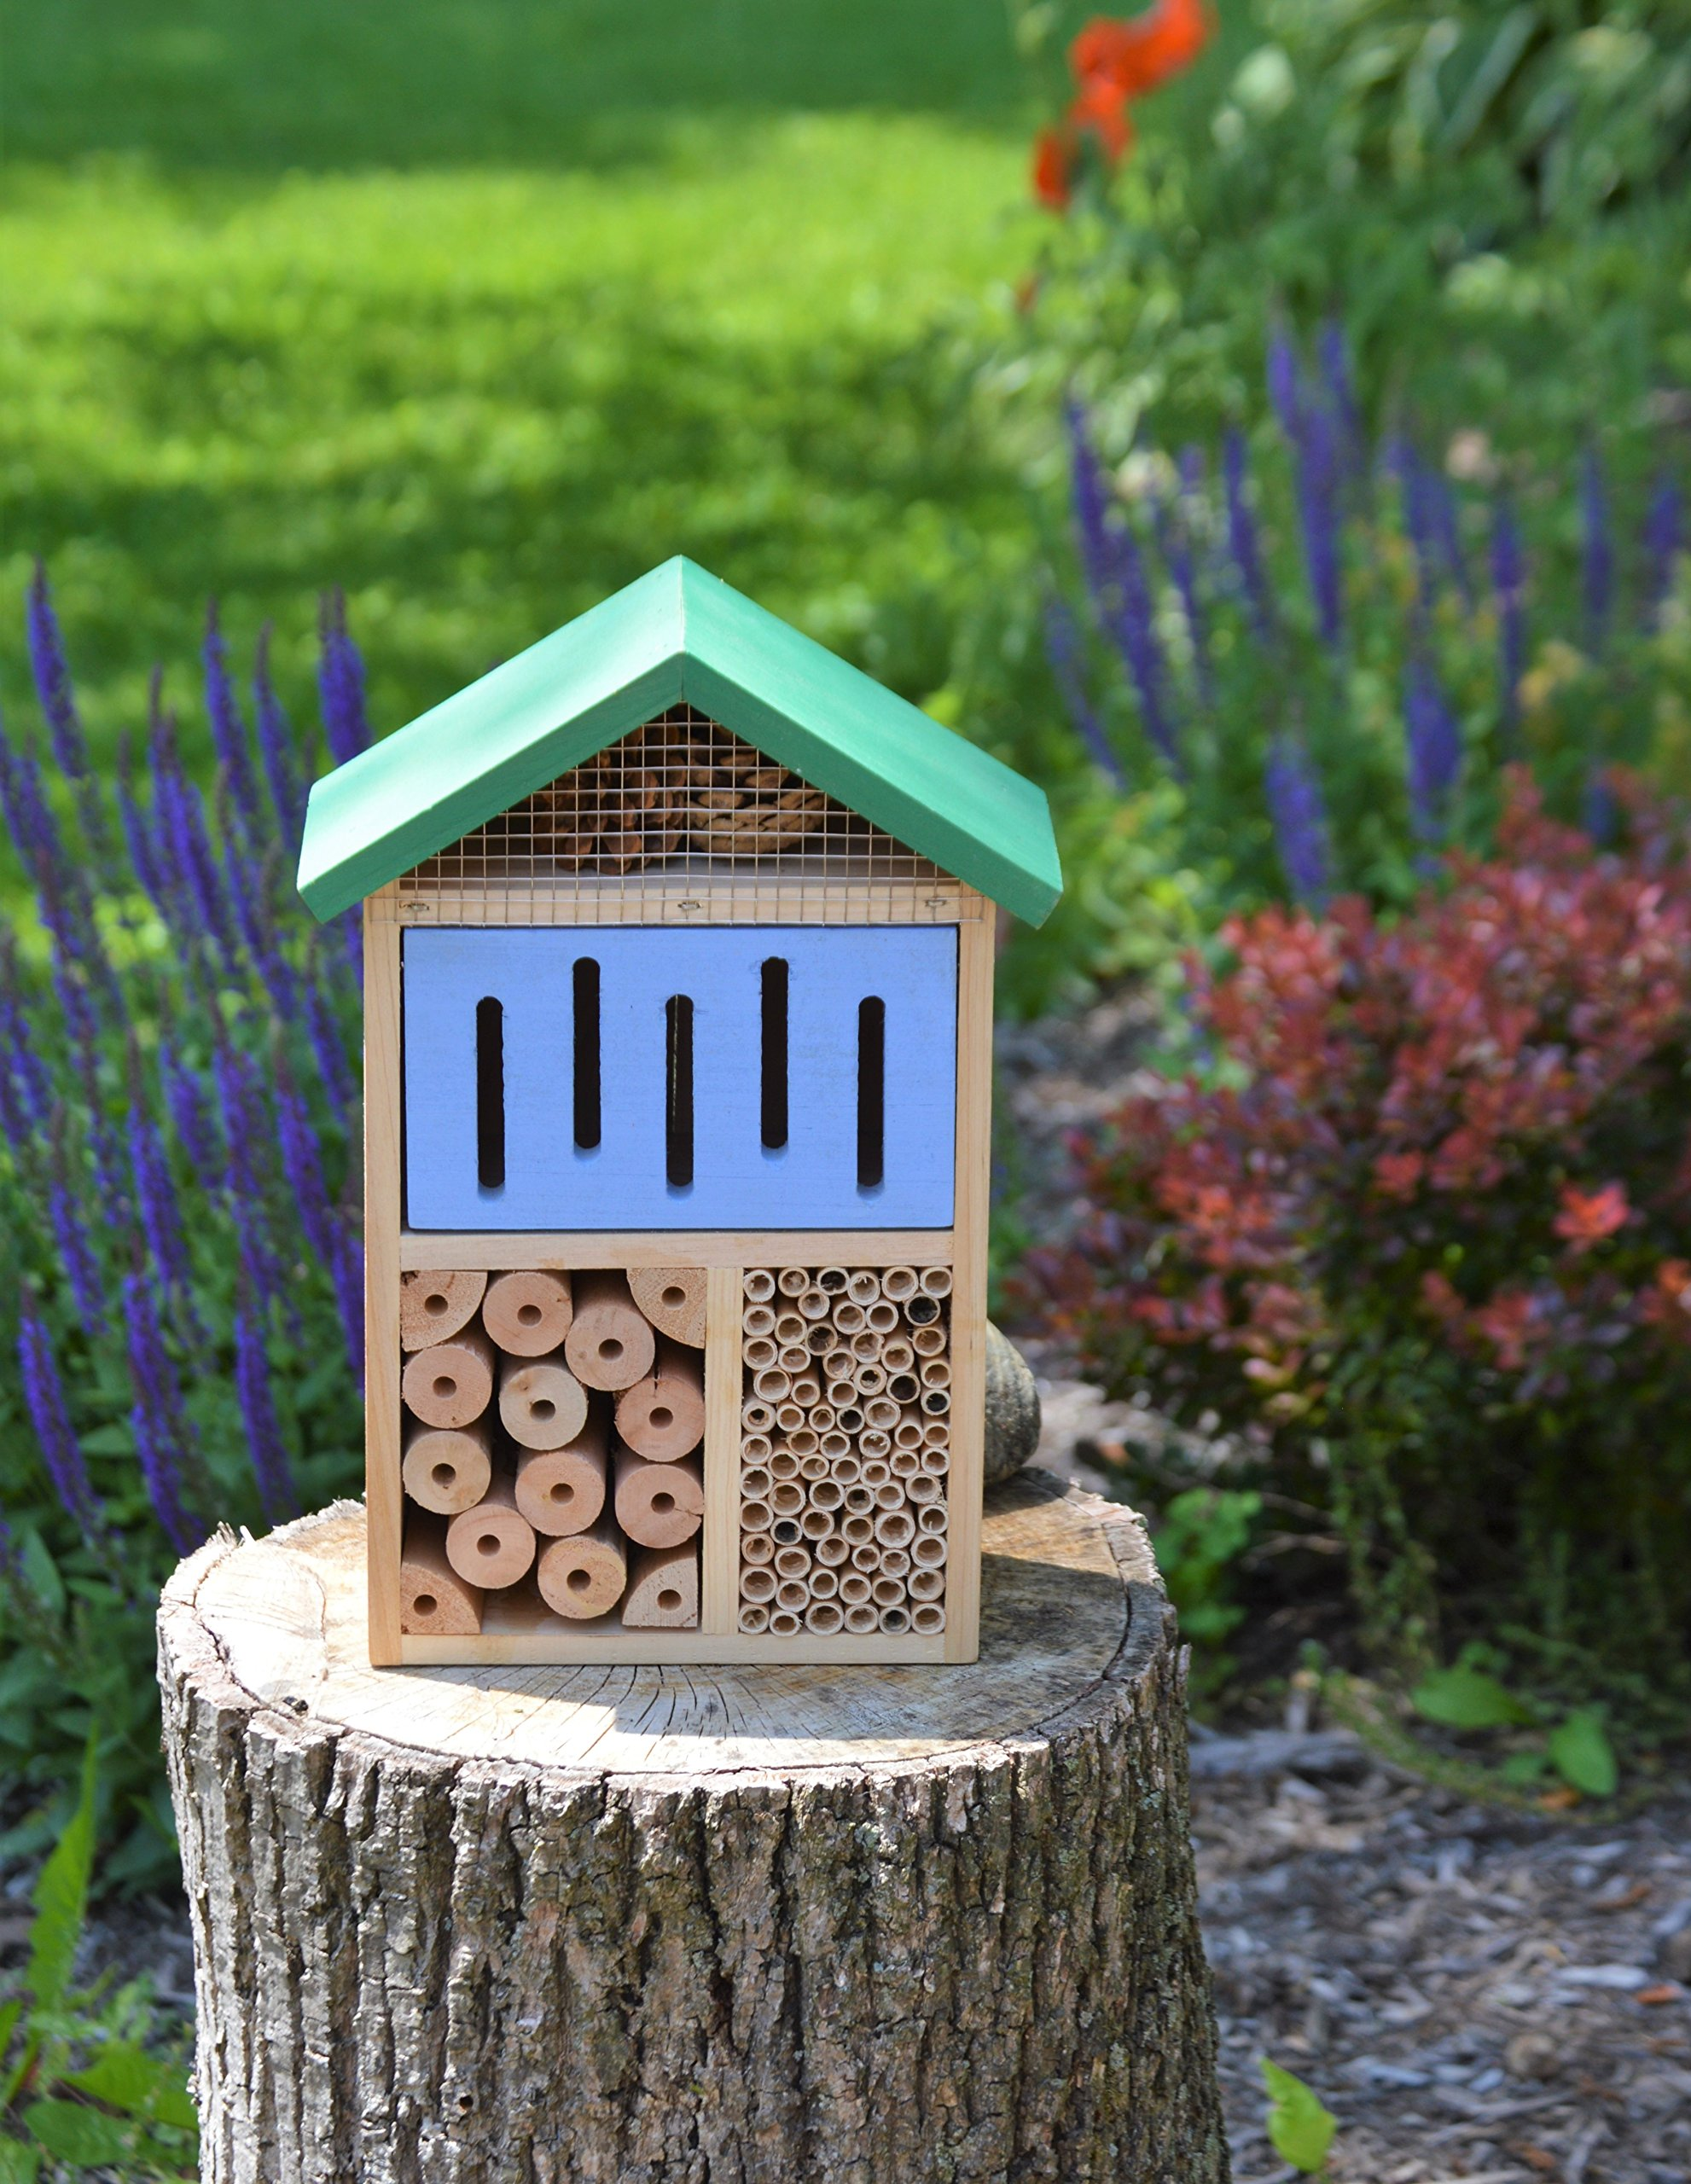 Nature's Way Bird Products CWH7 Better Gardens Beneficial Insect House, 4 Chamber by Nature's Way Bird Products (Image #2)